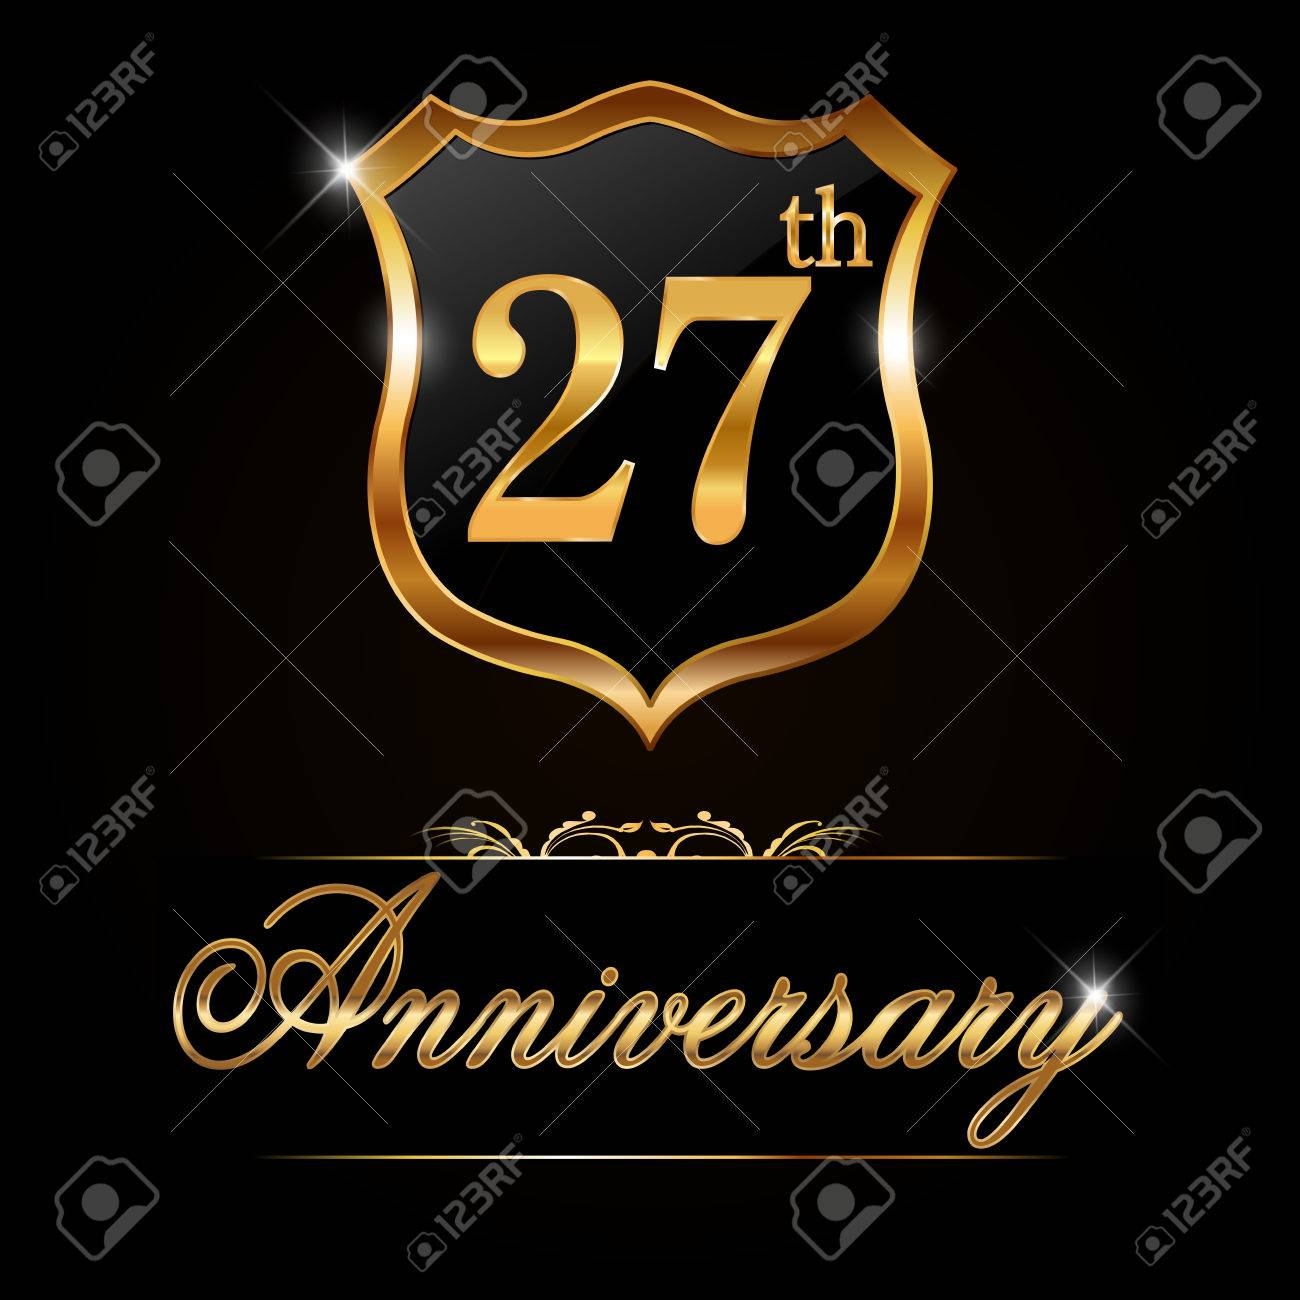 27 year anniversary golden label decorative golden emblem 27 year anniversary golden label decorative golden emblem vector illustration stock vector 36851764 biocorpaavc Images